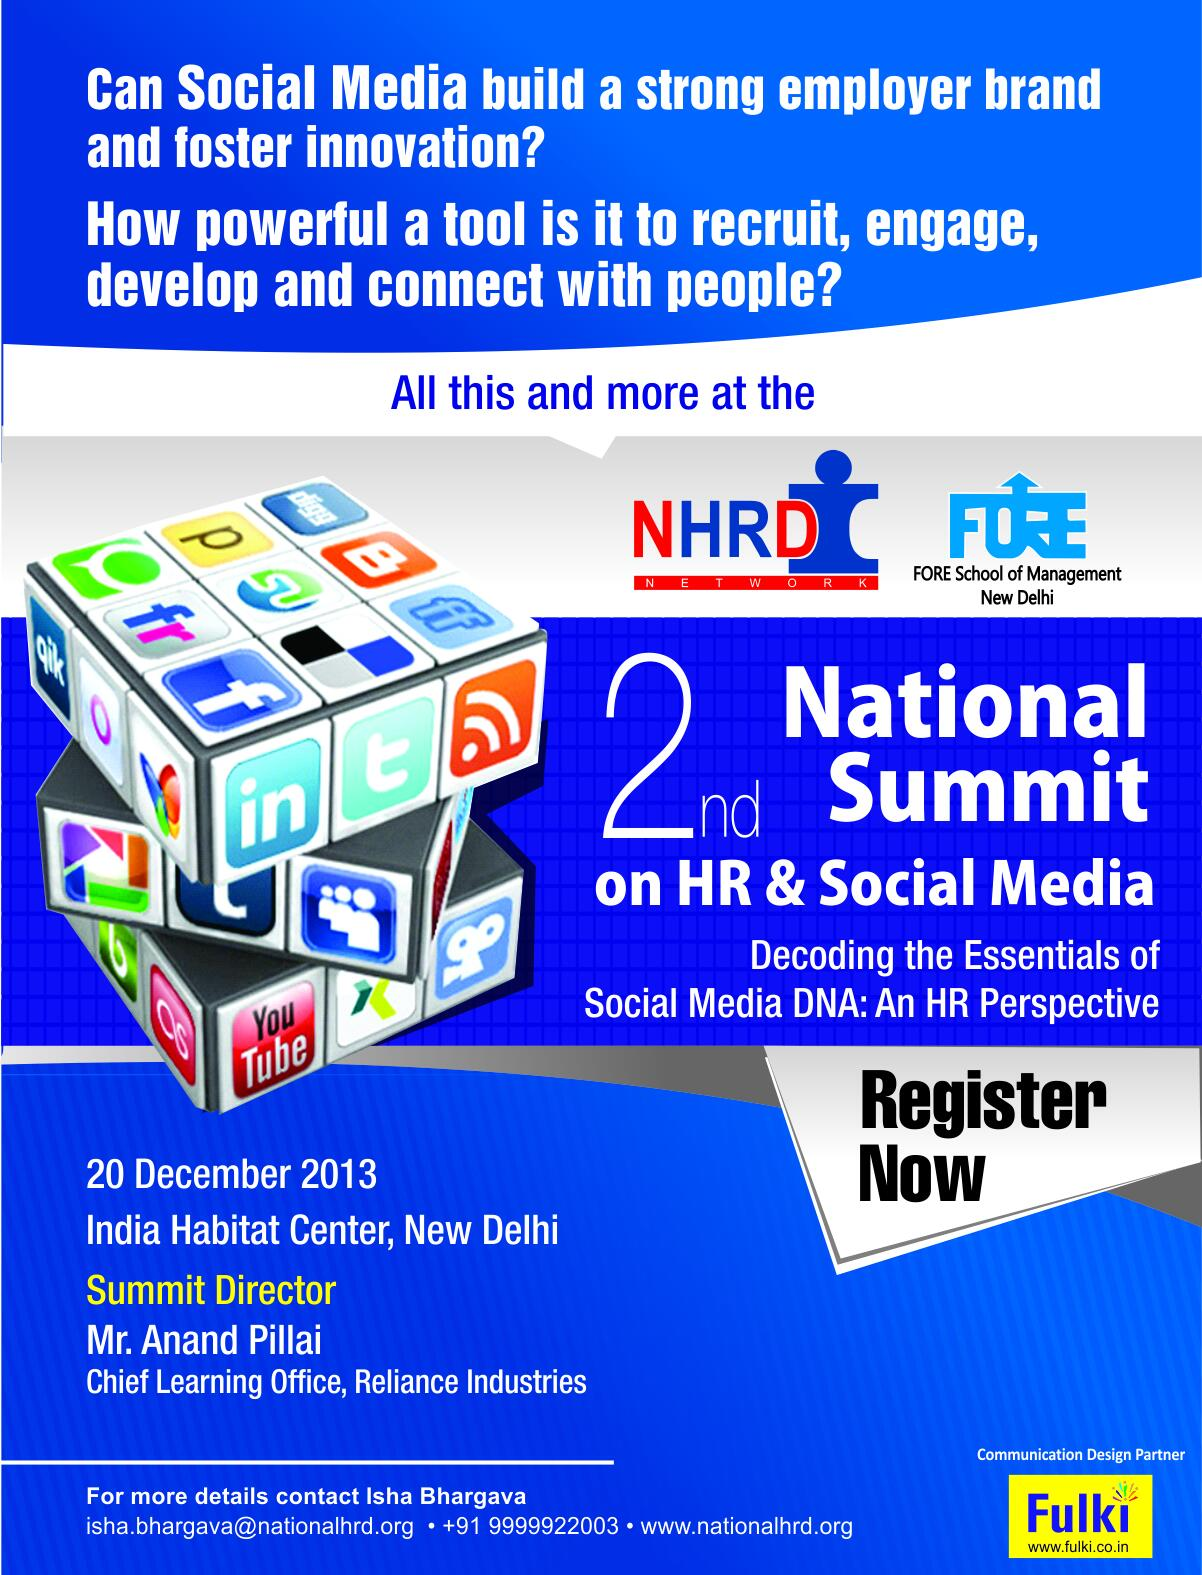 Twitter / Anand__Pillai: Speaking @NHRDN 20th Delhi- ...